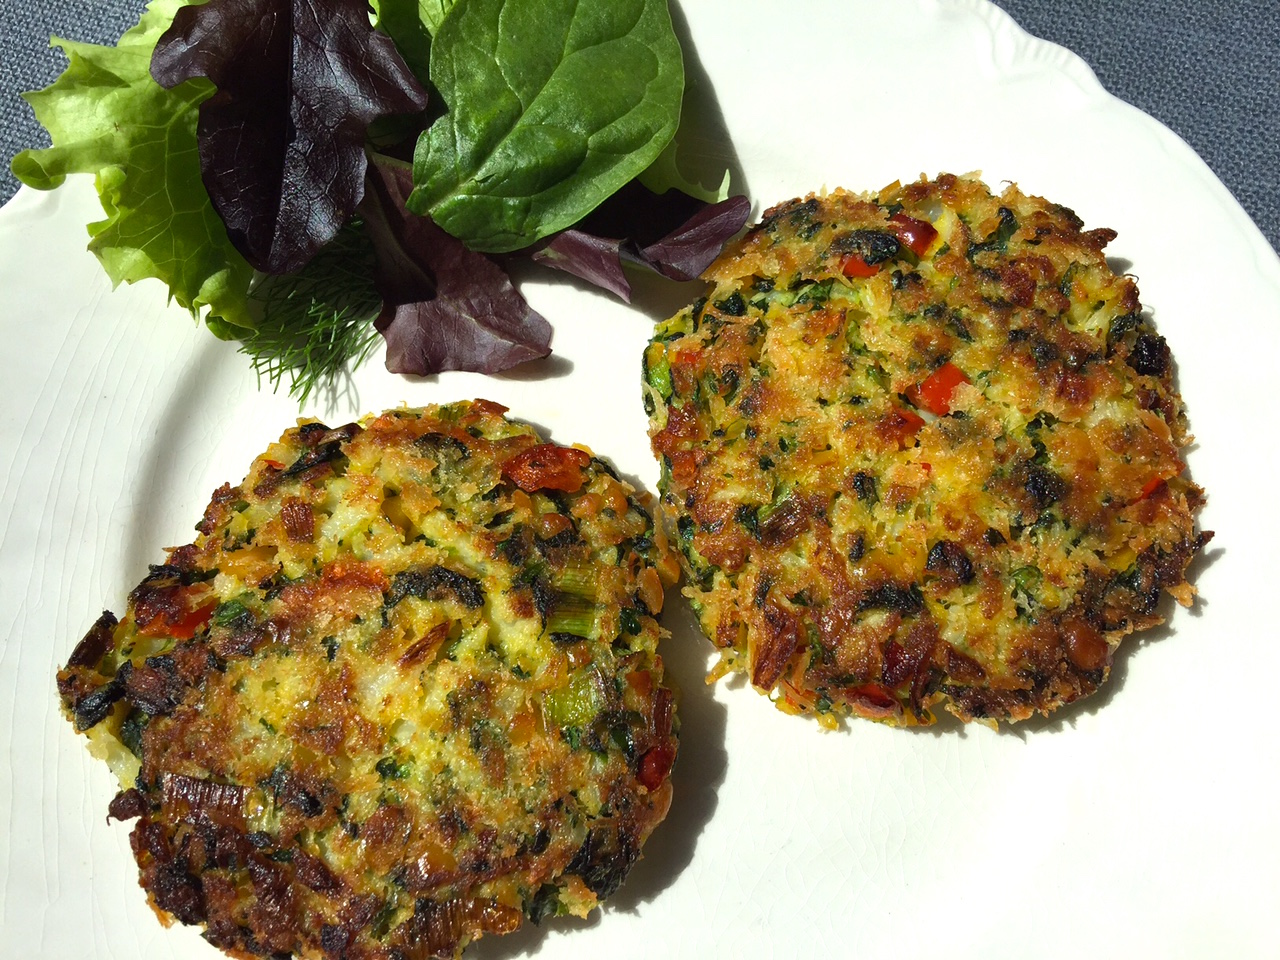 Plated chickpea patties